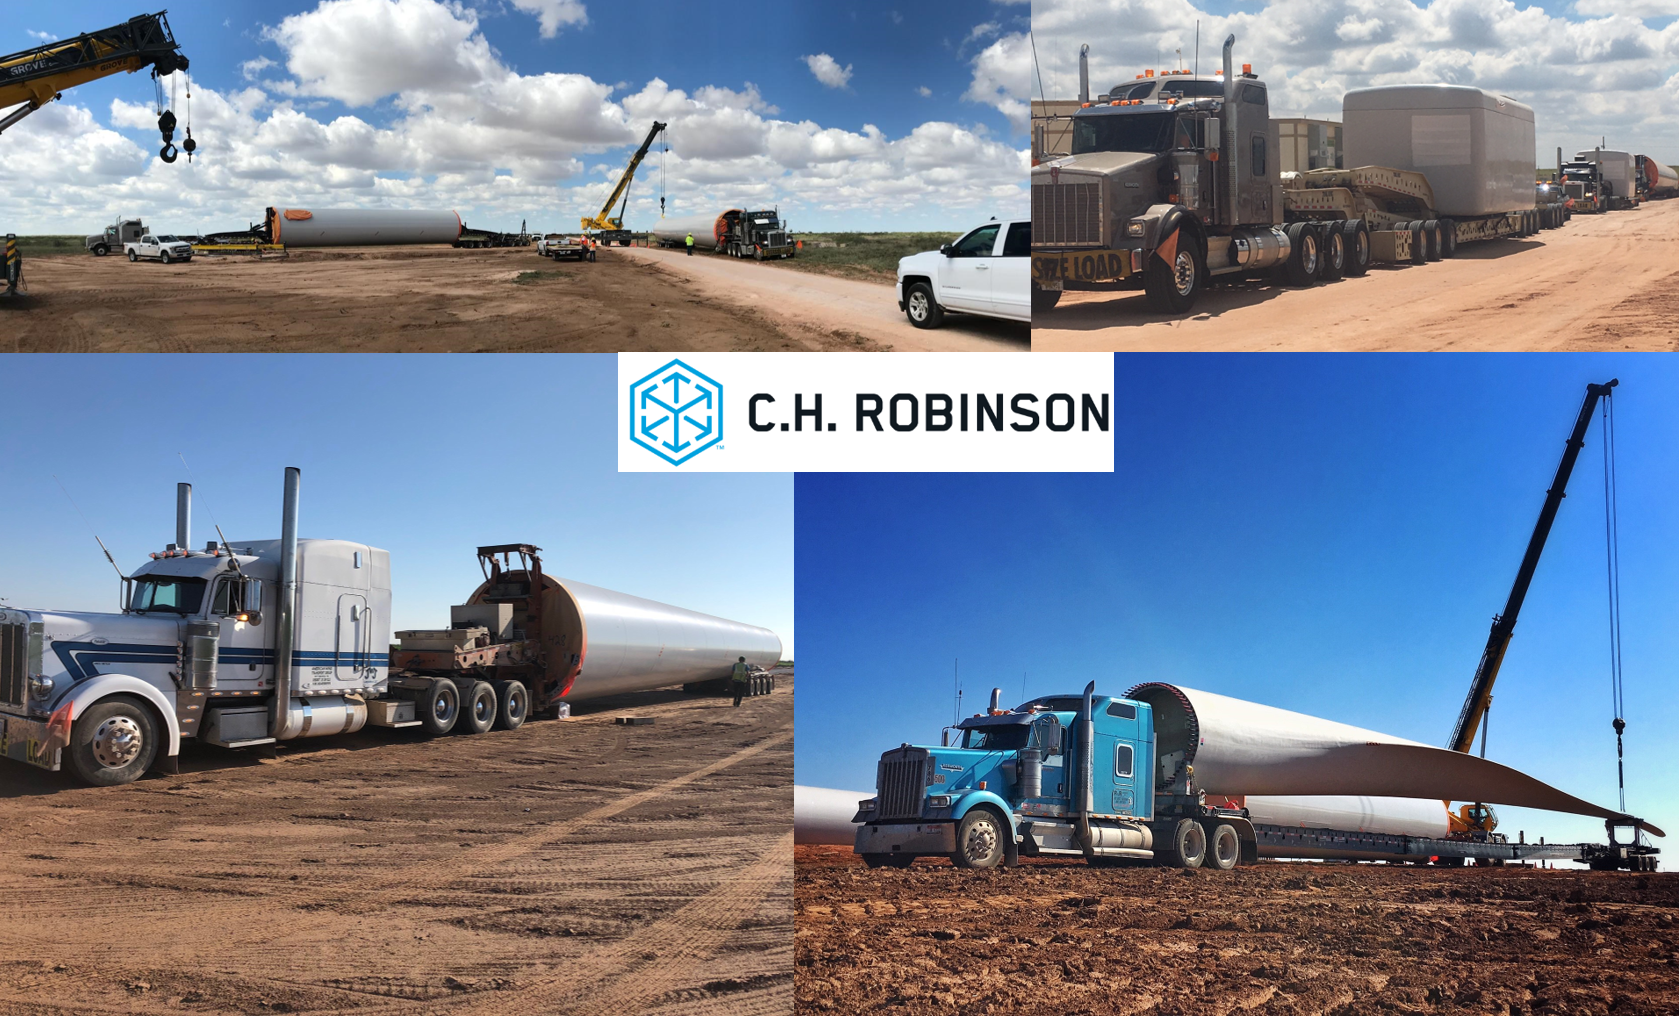 C.H. Robinson oversaw deliveries to six new U.S. Wind Farms in 2018